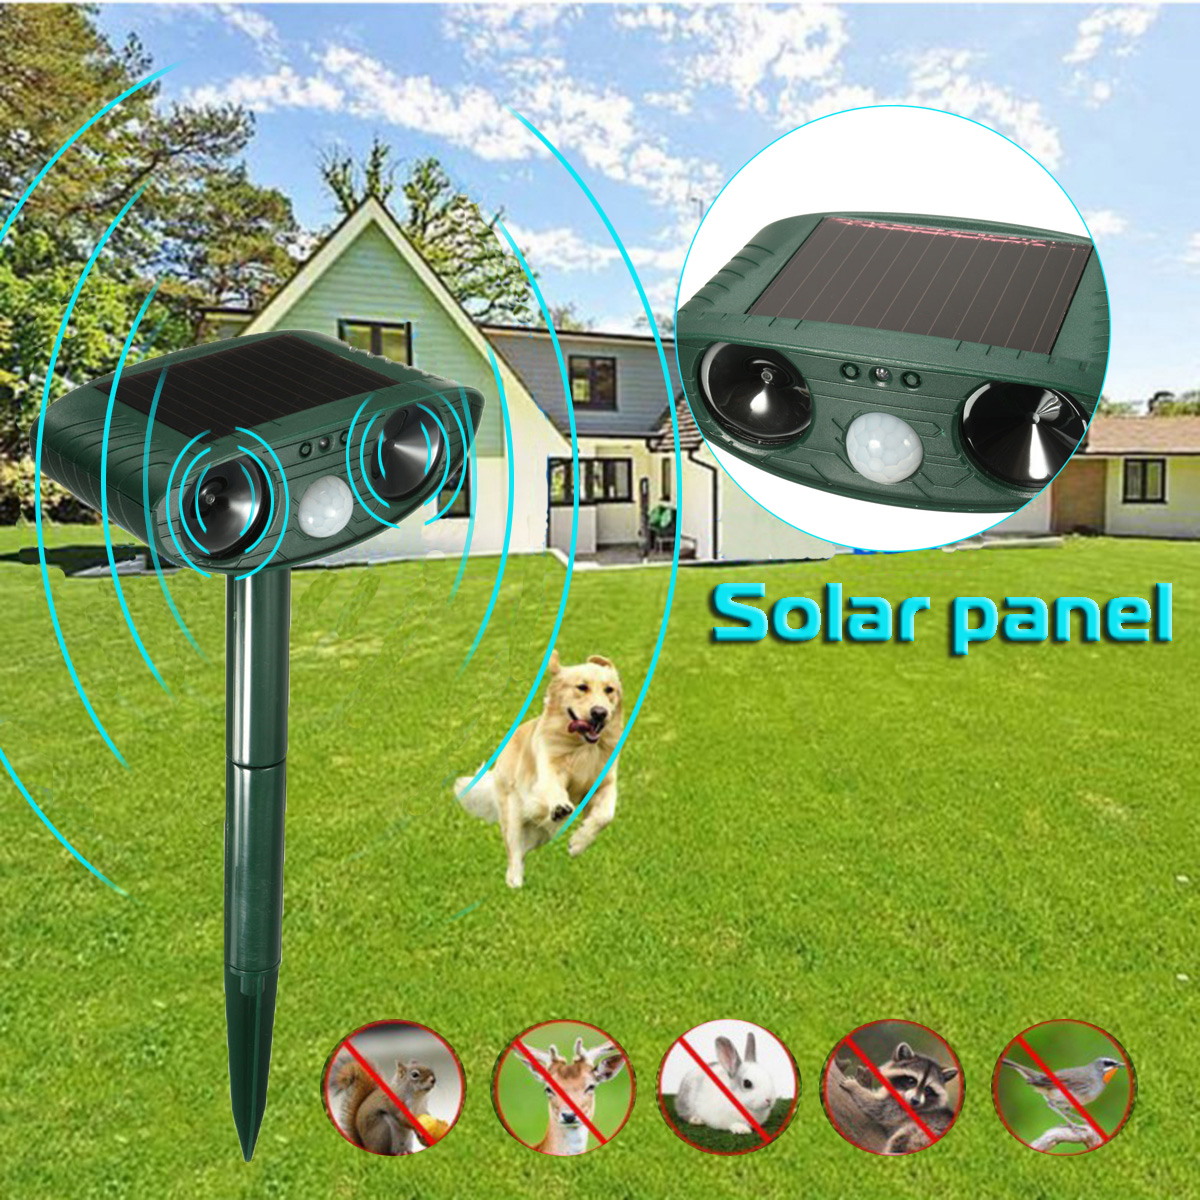 Outdoor Light Mole Destroyer Rodenticide Garden Garden Insect Pest 4 Pieces Of Solar Ultrasonic Sonic Mouse Led Light